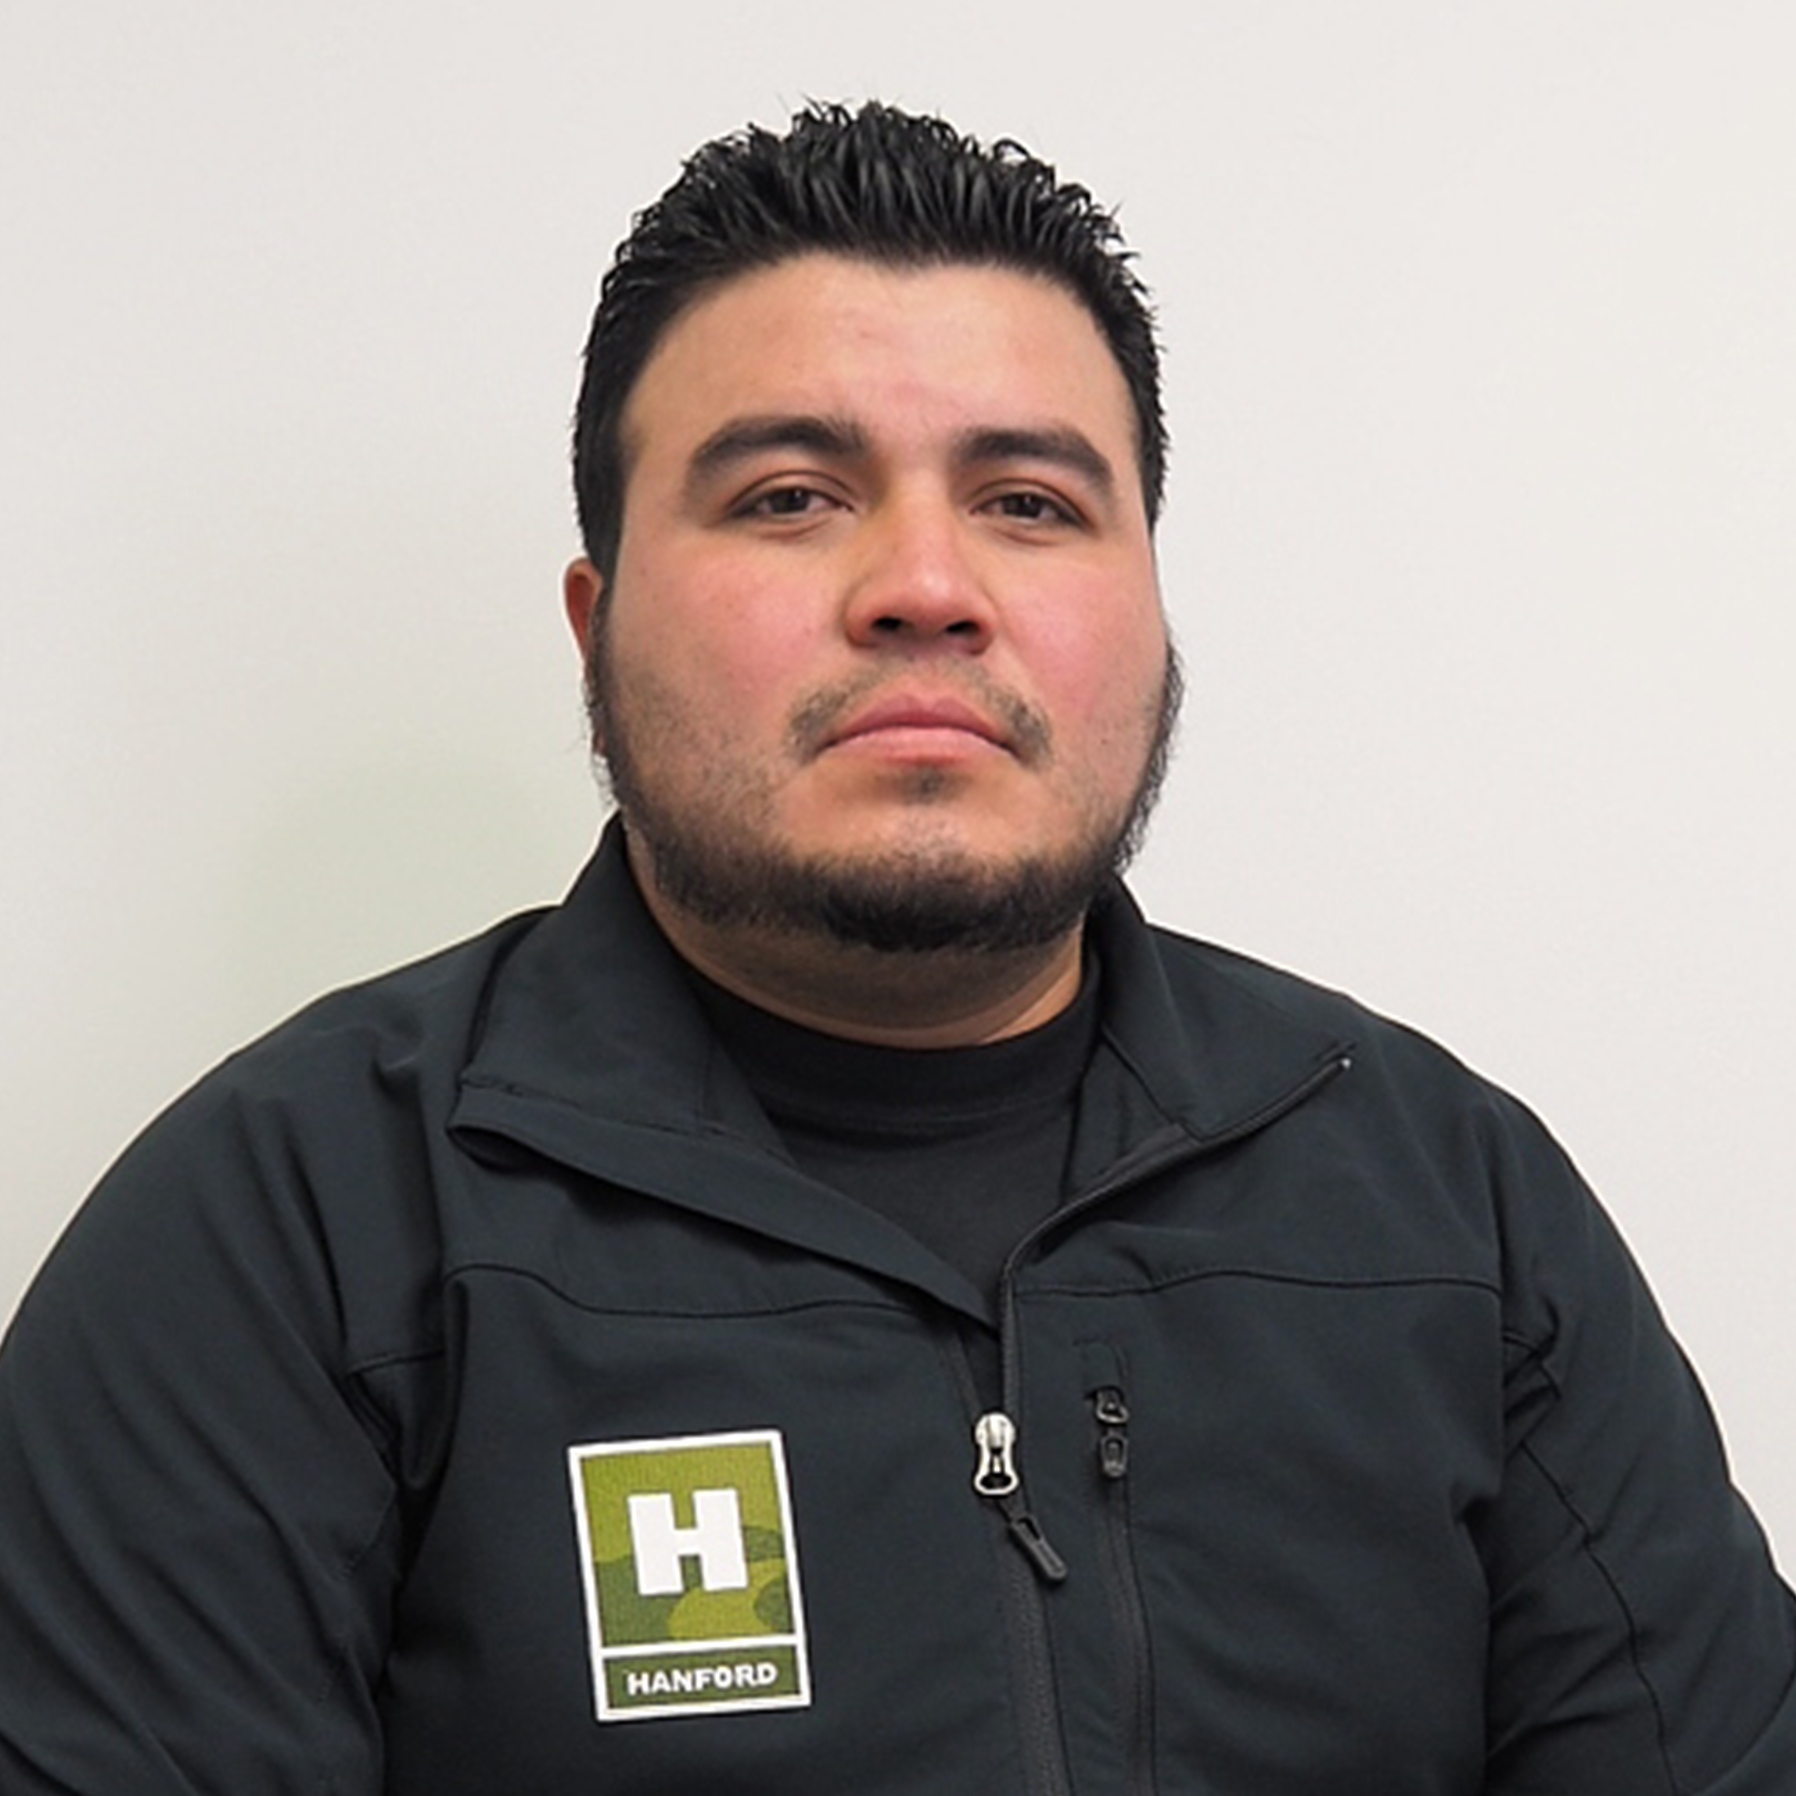 Eric Buenrostro Padilla, Safety Coordinator - e.buenrostro@hanfordarc.comBeginning his career at Hanford as a crew member in 2014 then transitioning to the Safety Coordinator, Eric understands and applies safe construction practice as it relates to the work site and as it affects the public, neighboring property and public utilities. He routinely performs site safety inspections, and is tasked with maintaining safe practices company-wide, and training employees in standard safety protocol.